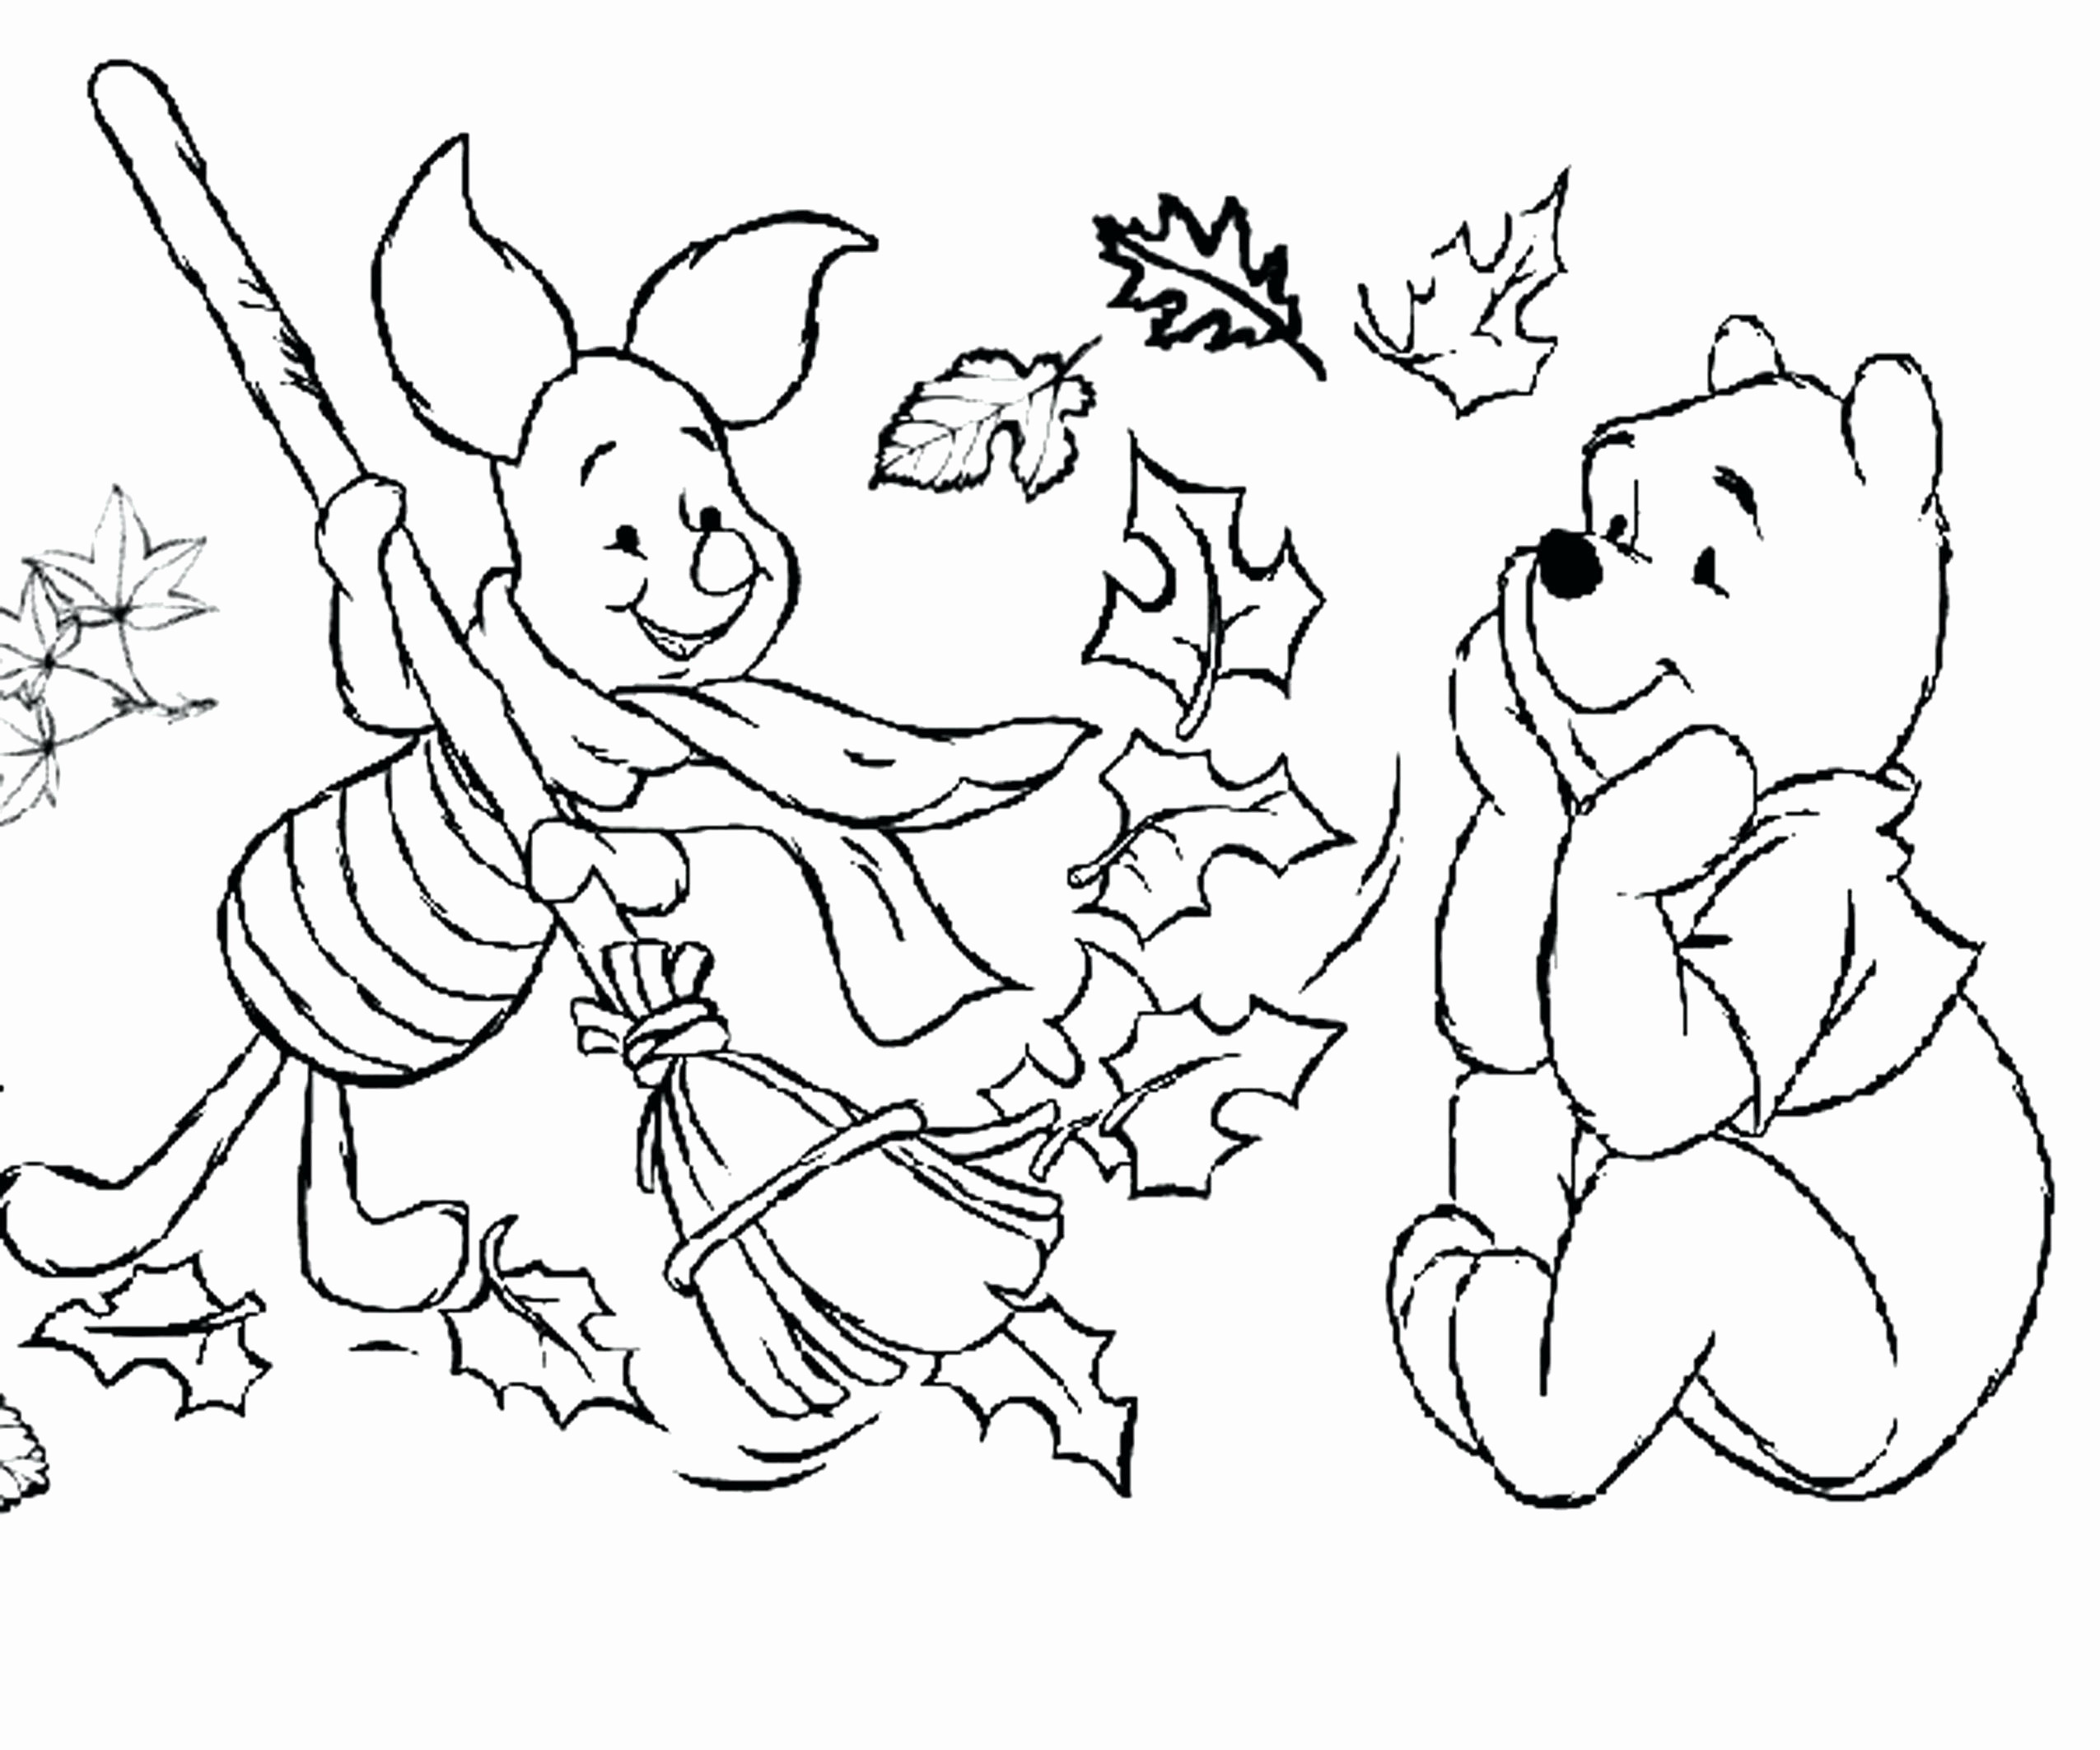 mairo coloring pages Collection-Coloring Pages For Boys Mario Cool Coloring Pages Mario Fall Coloring Pages 0d Page For 20-q